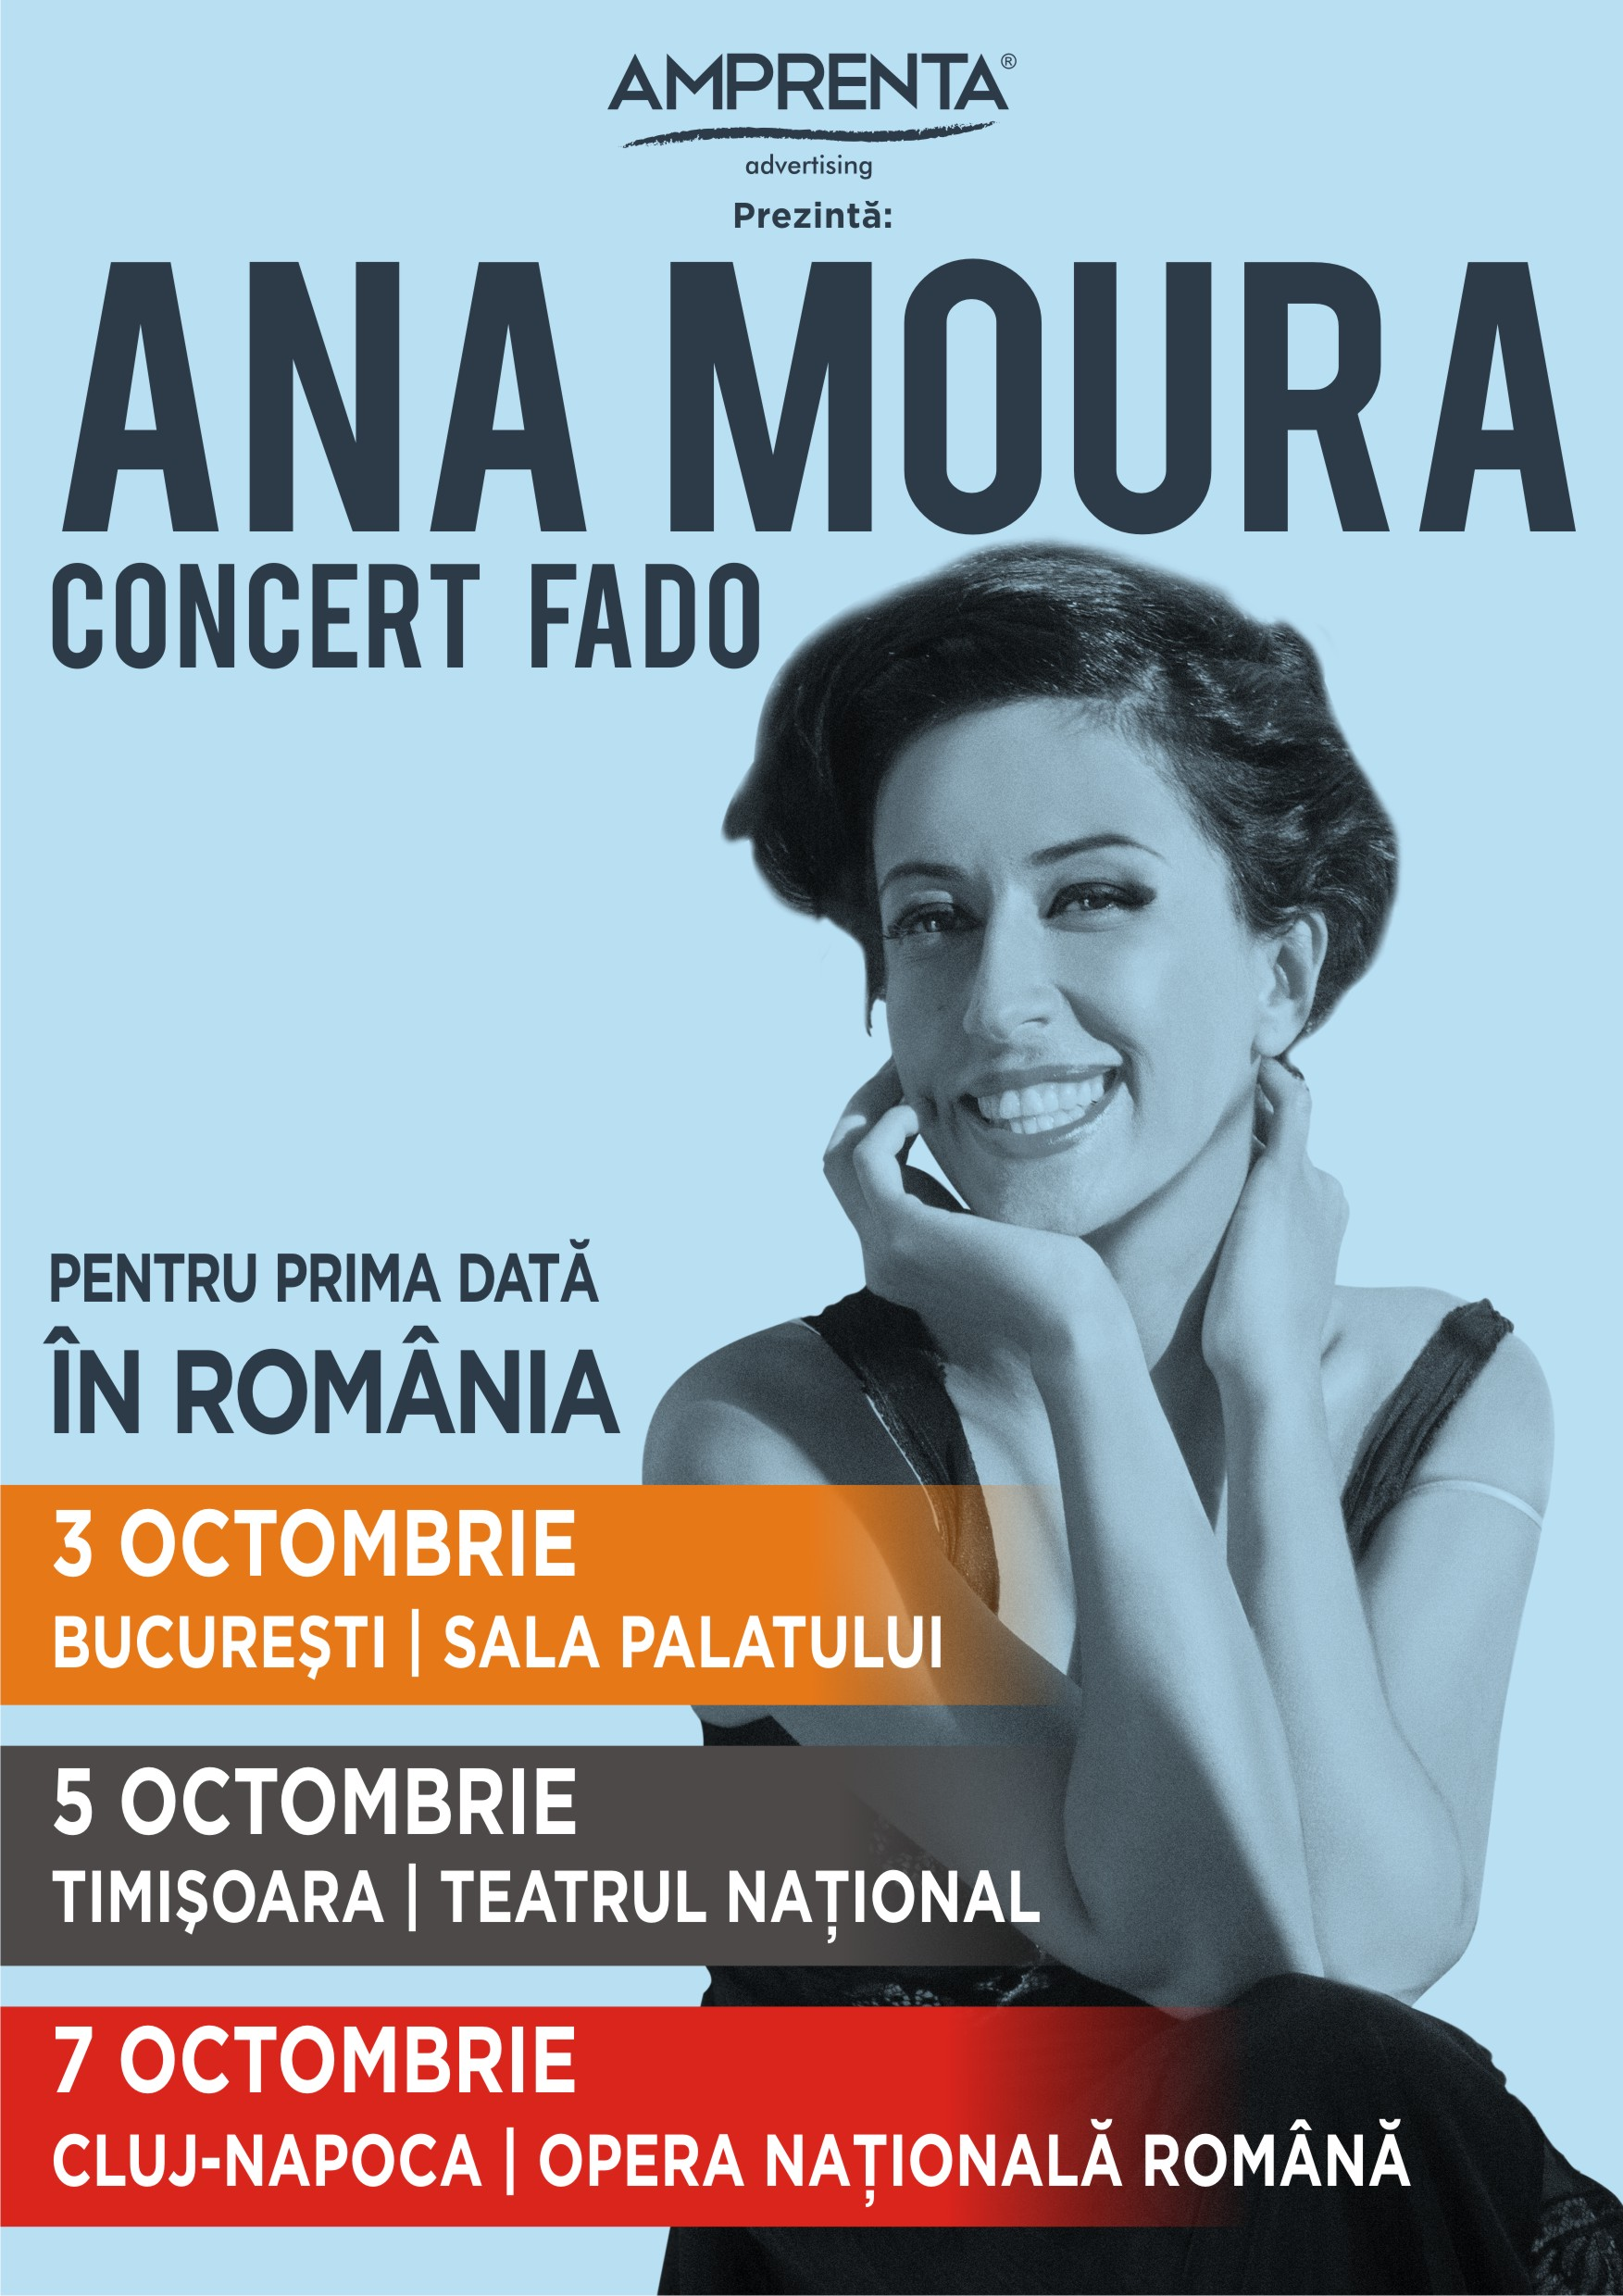 Ana Moura afis general